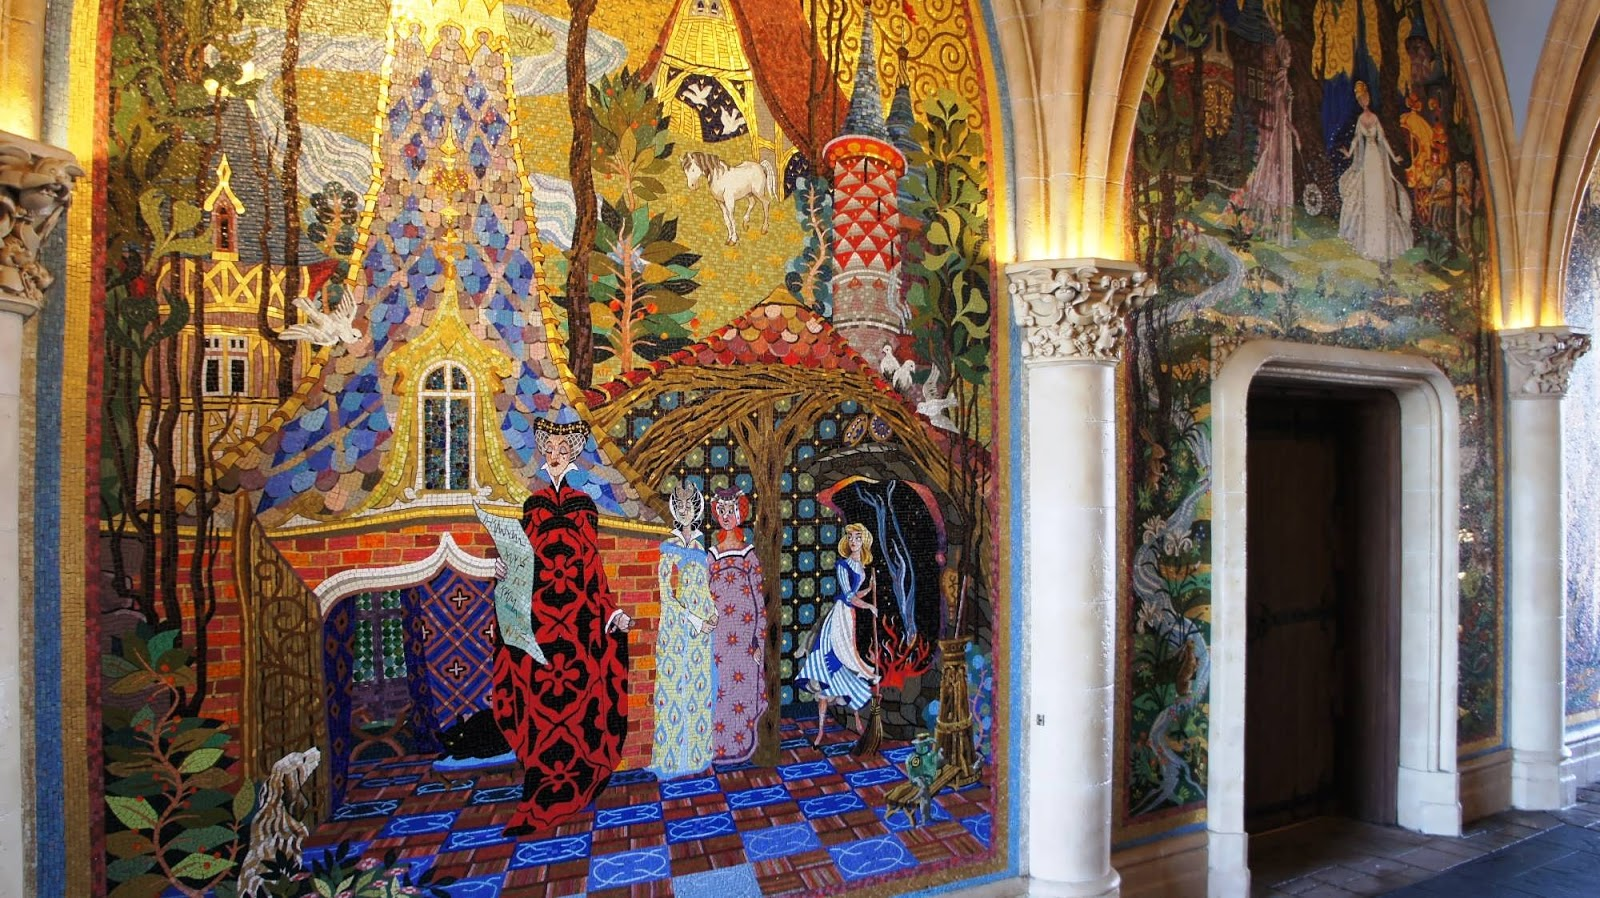 Magic kingdom fantasyland for Cinderella castle mural